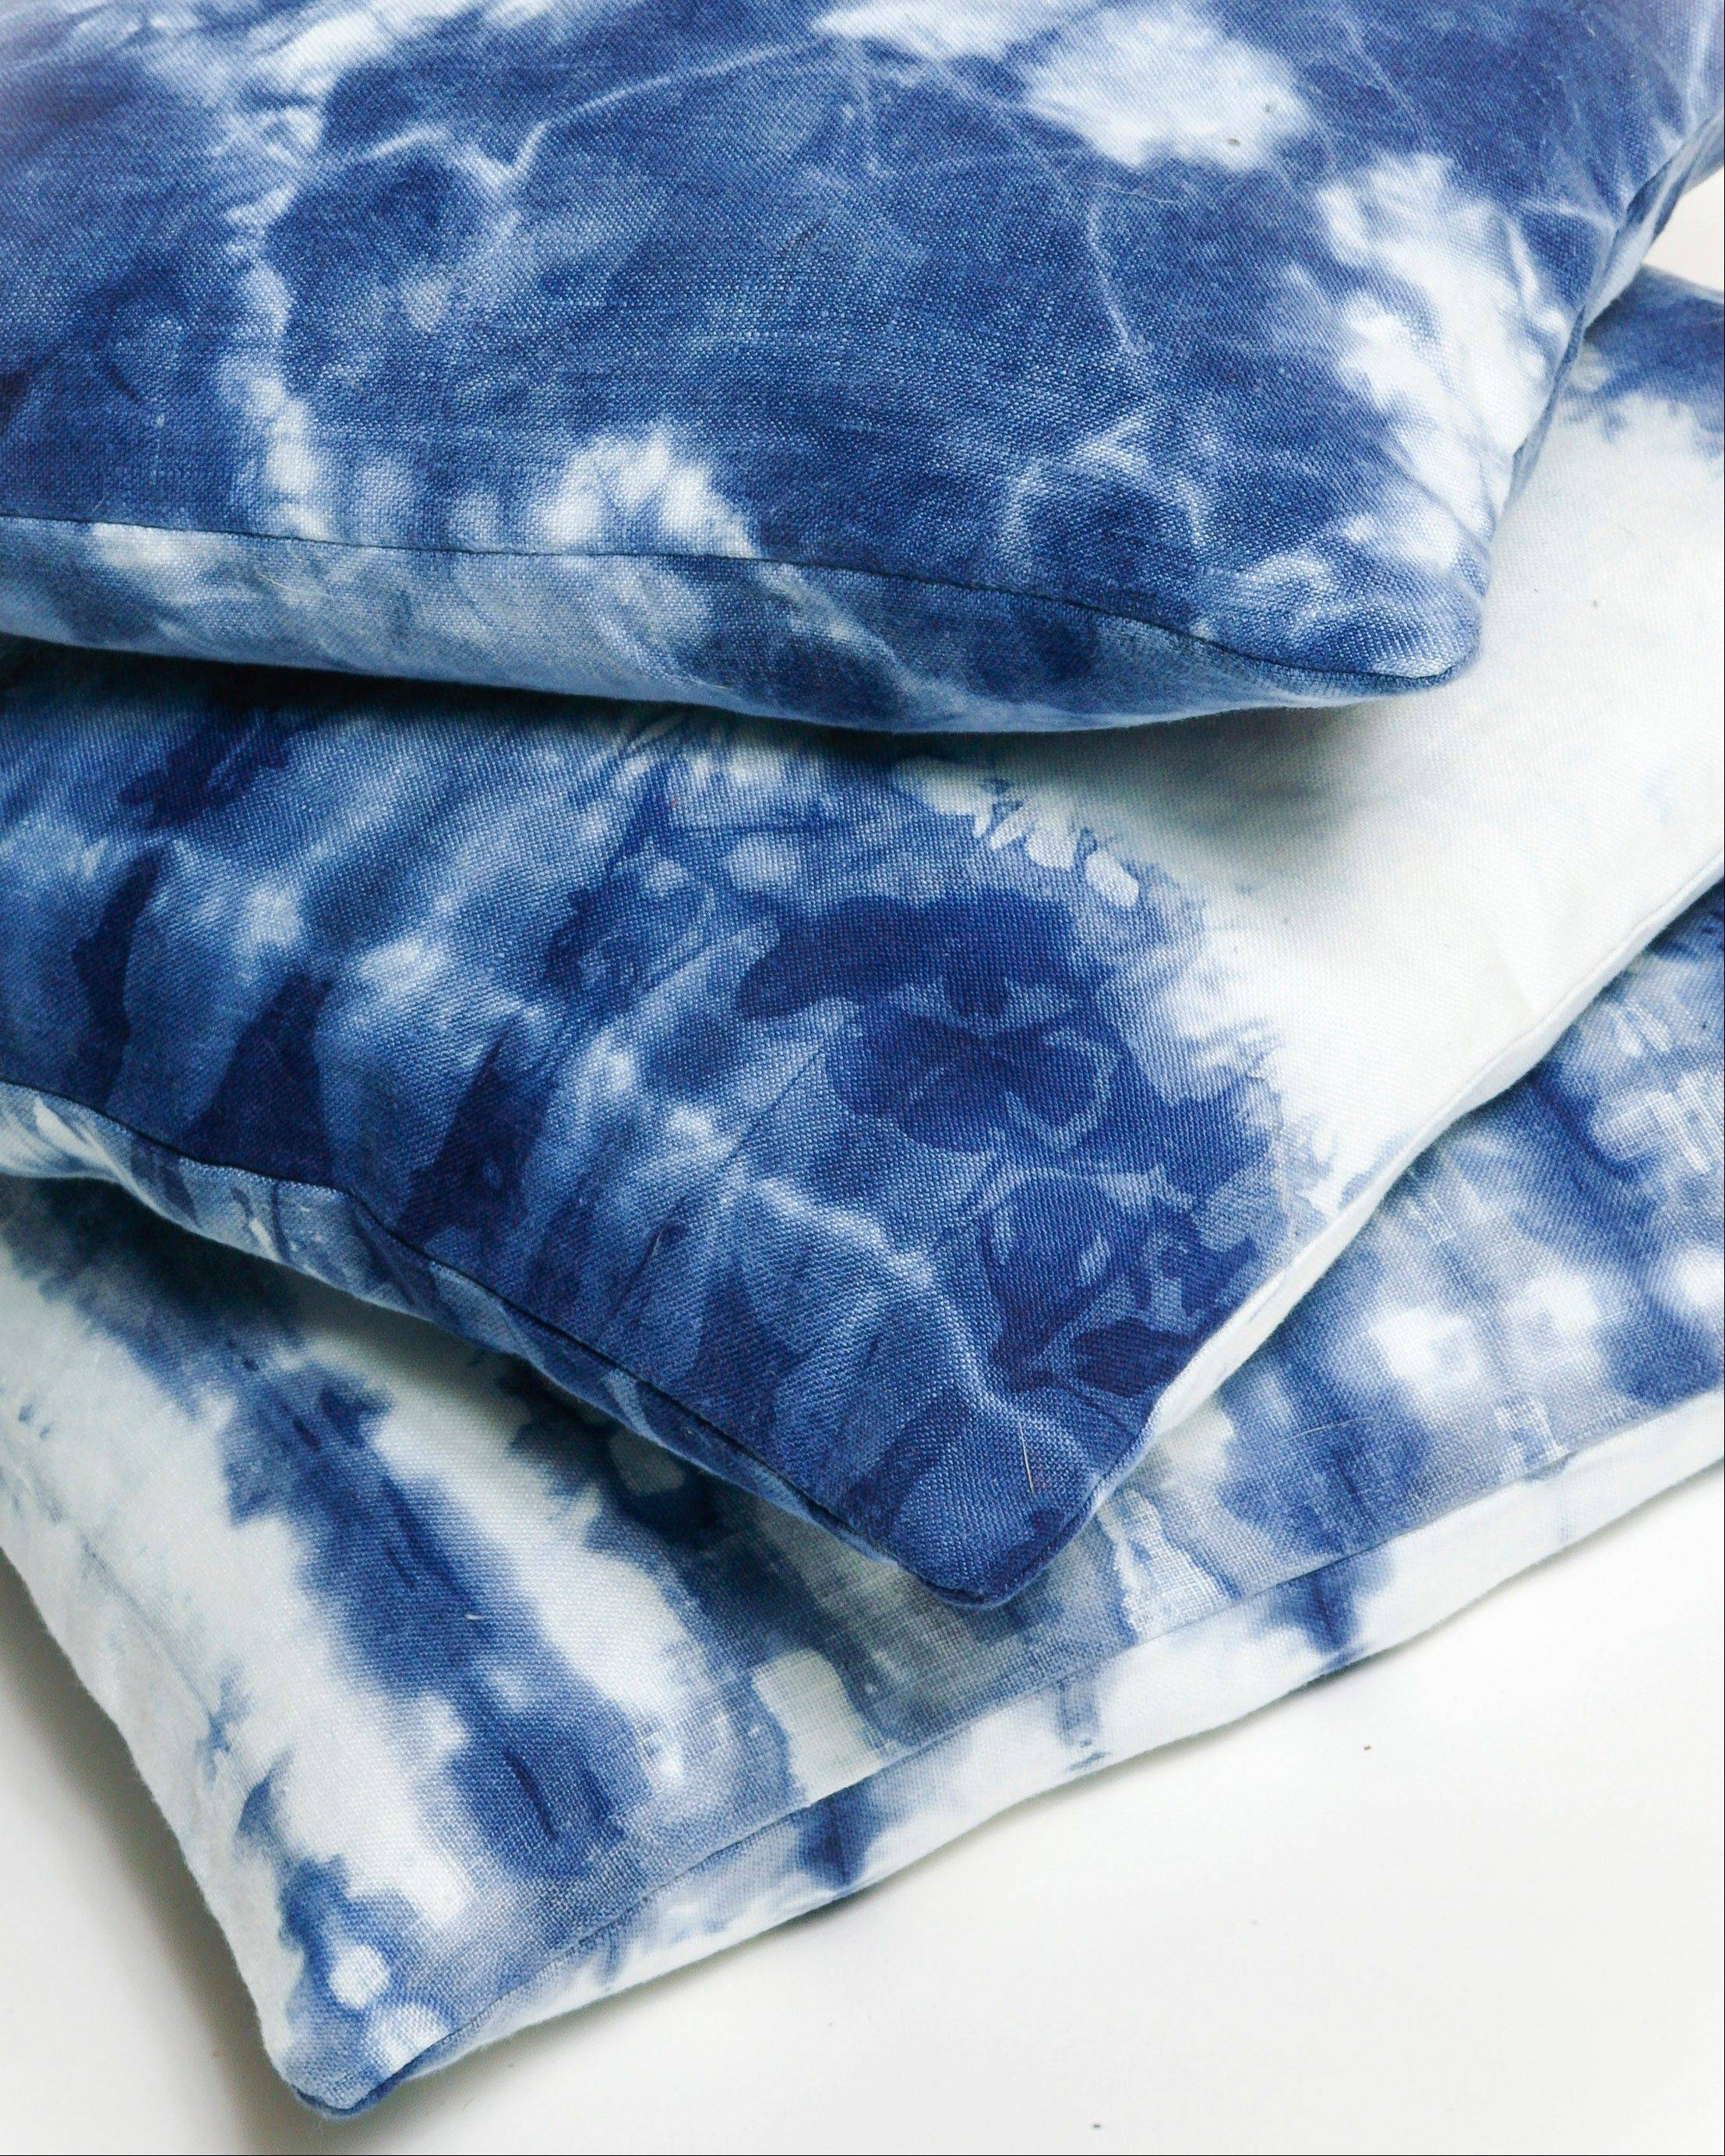 Oriana DiNella recently launched her own Web-based shibori line, OriShibori.com, including linen tableware, pillows and throws, and large leather wall hangings, are all made to order and hand-dyed in organic indigo.